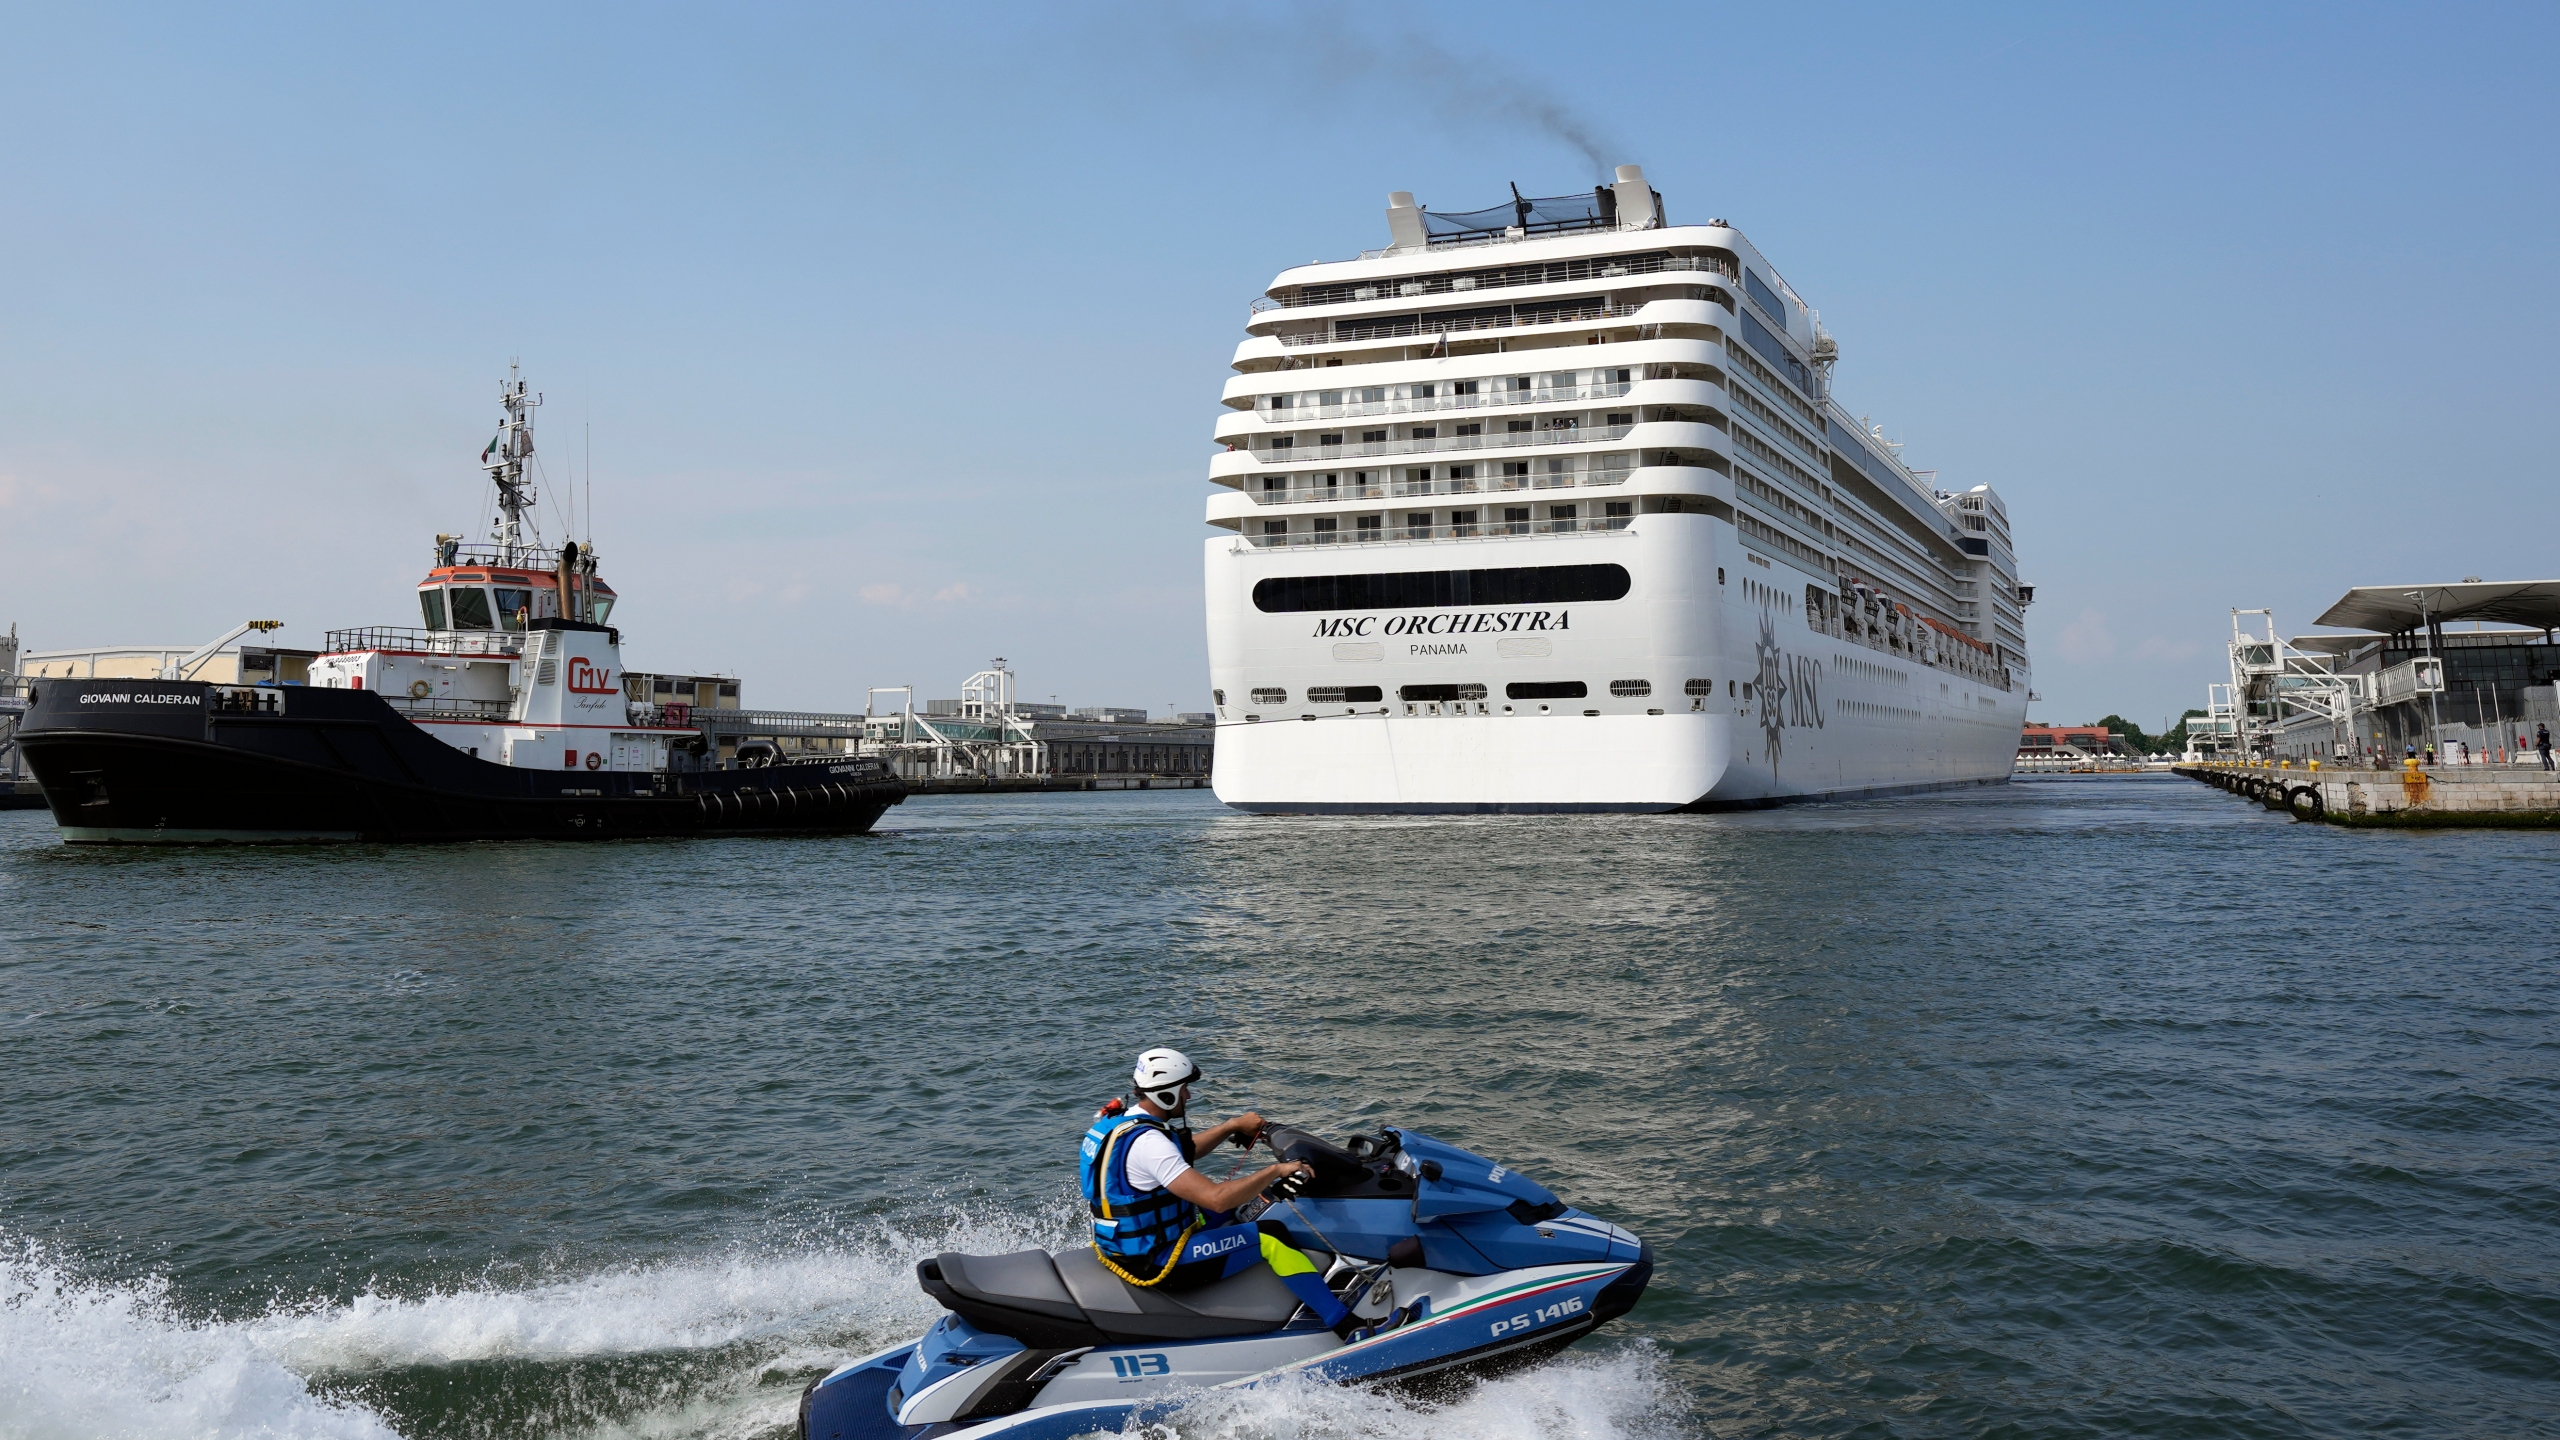 The the 92,409-ton, 16-deck MSC Orchestra cruise ship exits the lagoon as it leaves Venice, Italy, Saturday, June 5, 2021. (AP Photo/Antonio Calanni)